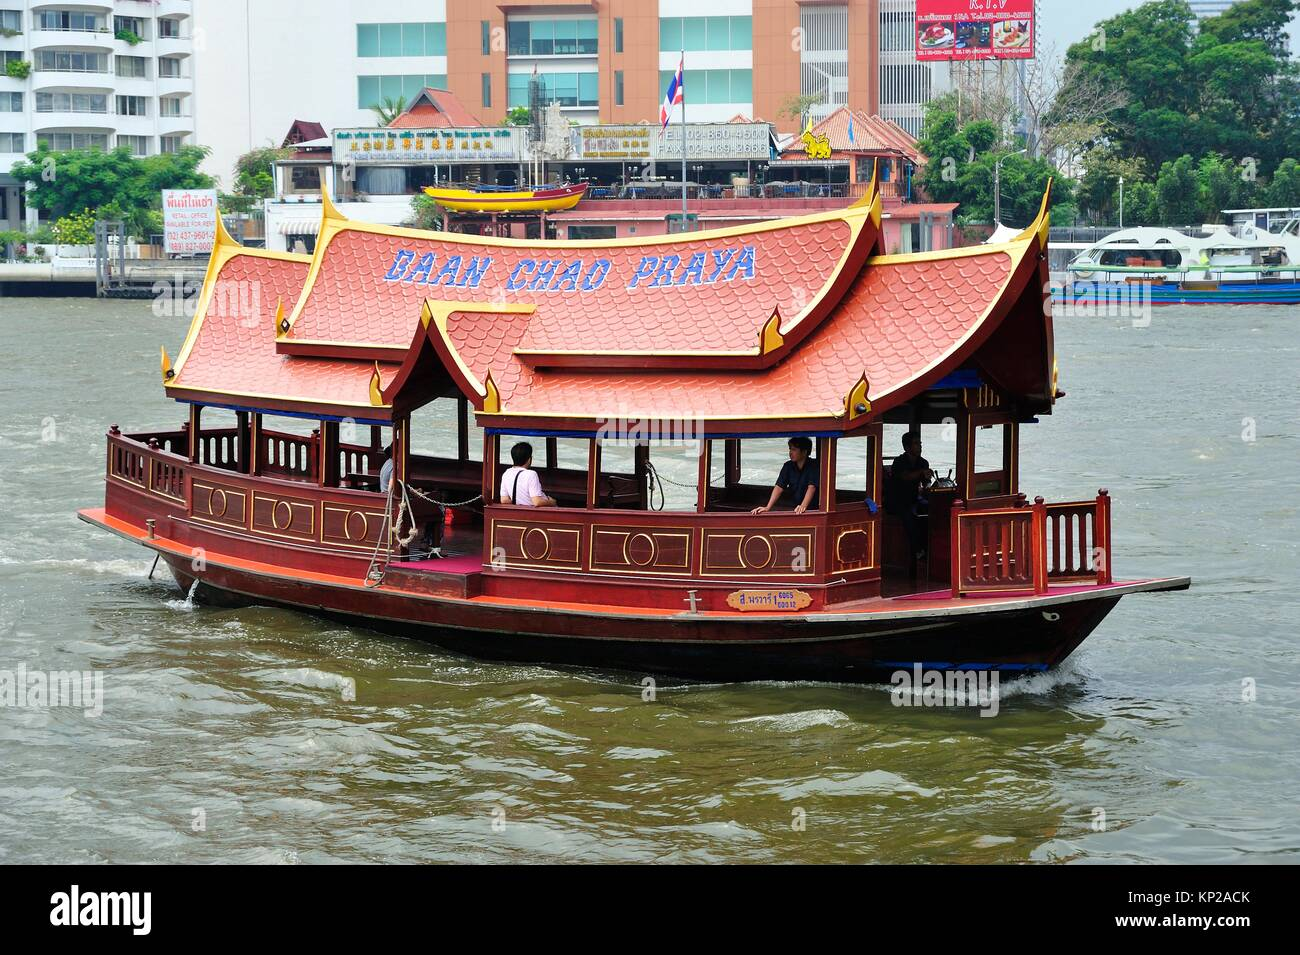 tour boat on Chao Phraya River, Bangkok, Thailand. - Stock Image